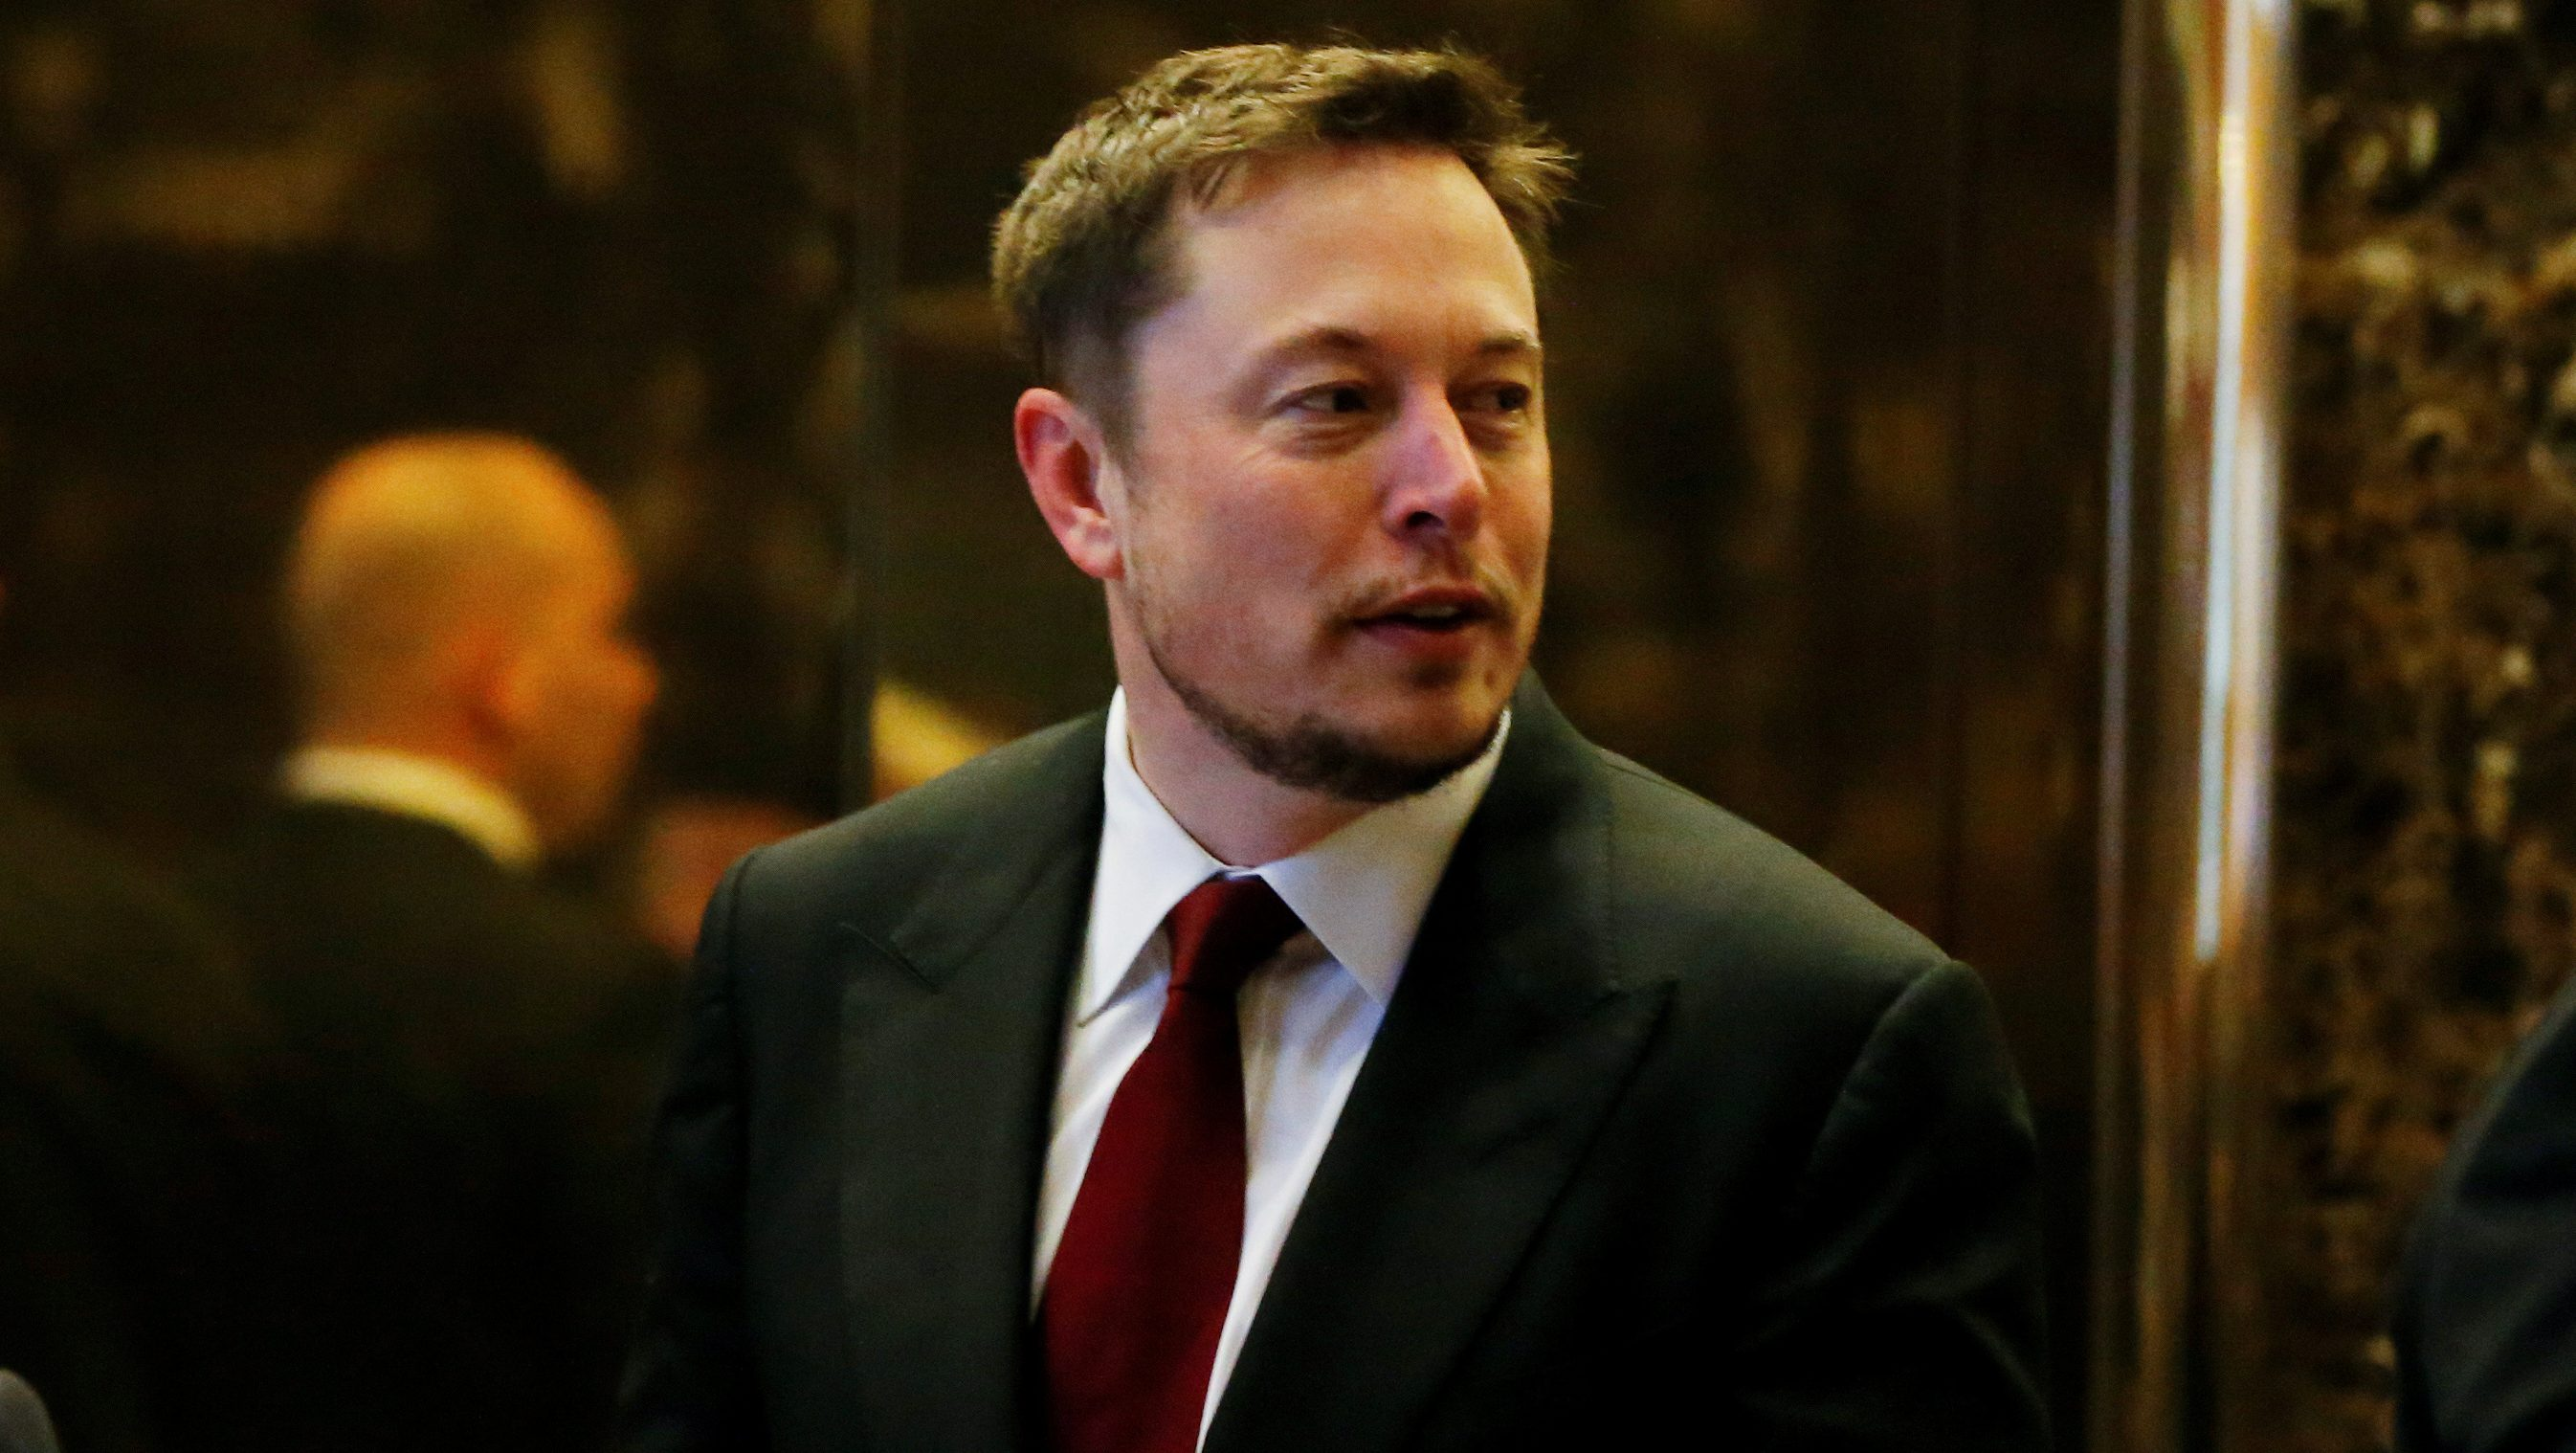 FILE PHOTO: Tesla Chief Executive, Elon Musk enters the lobby of Trump Tower in Manhattan, New York, U.S., January 6, 2017. REUTERS/Shannon Stapleton/File Photo - RTS128V1